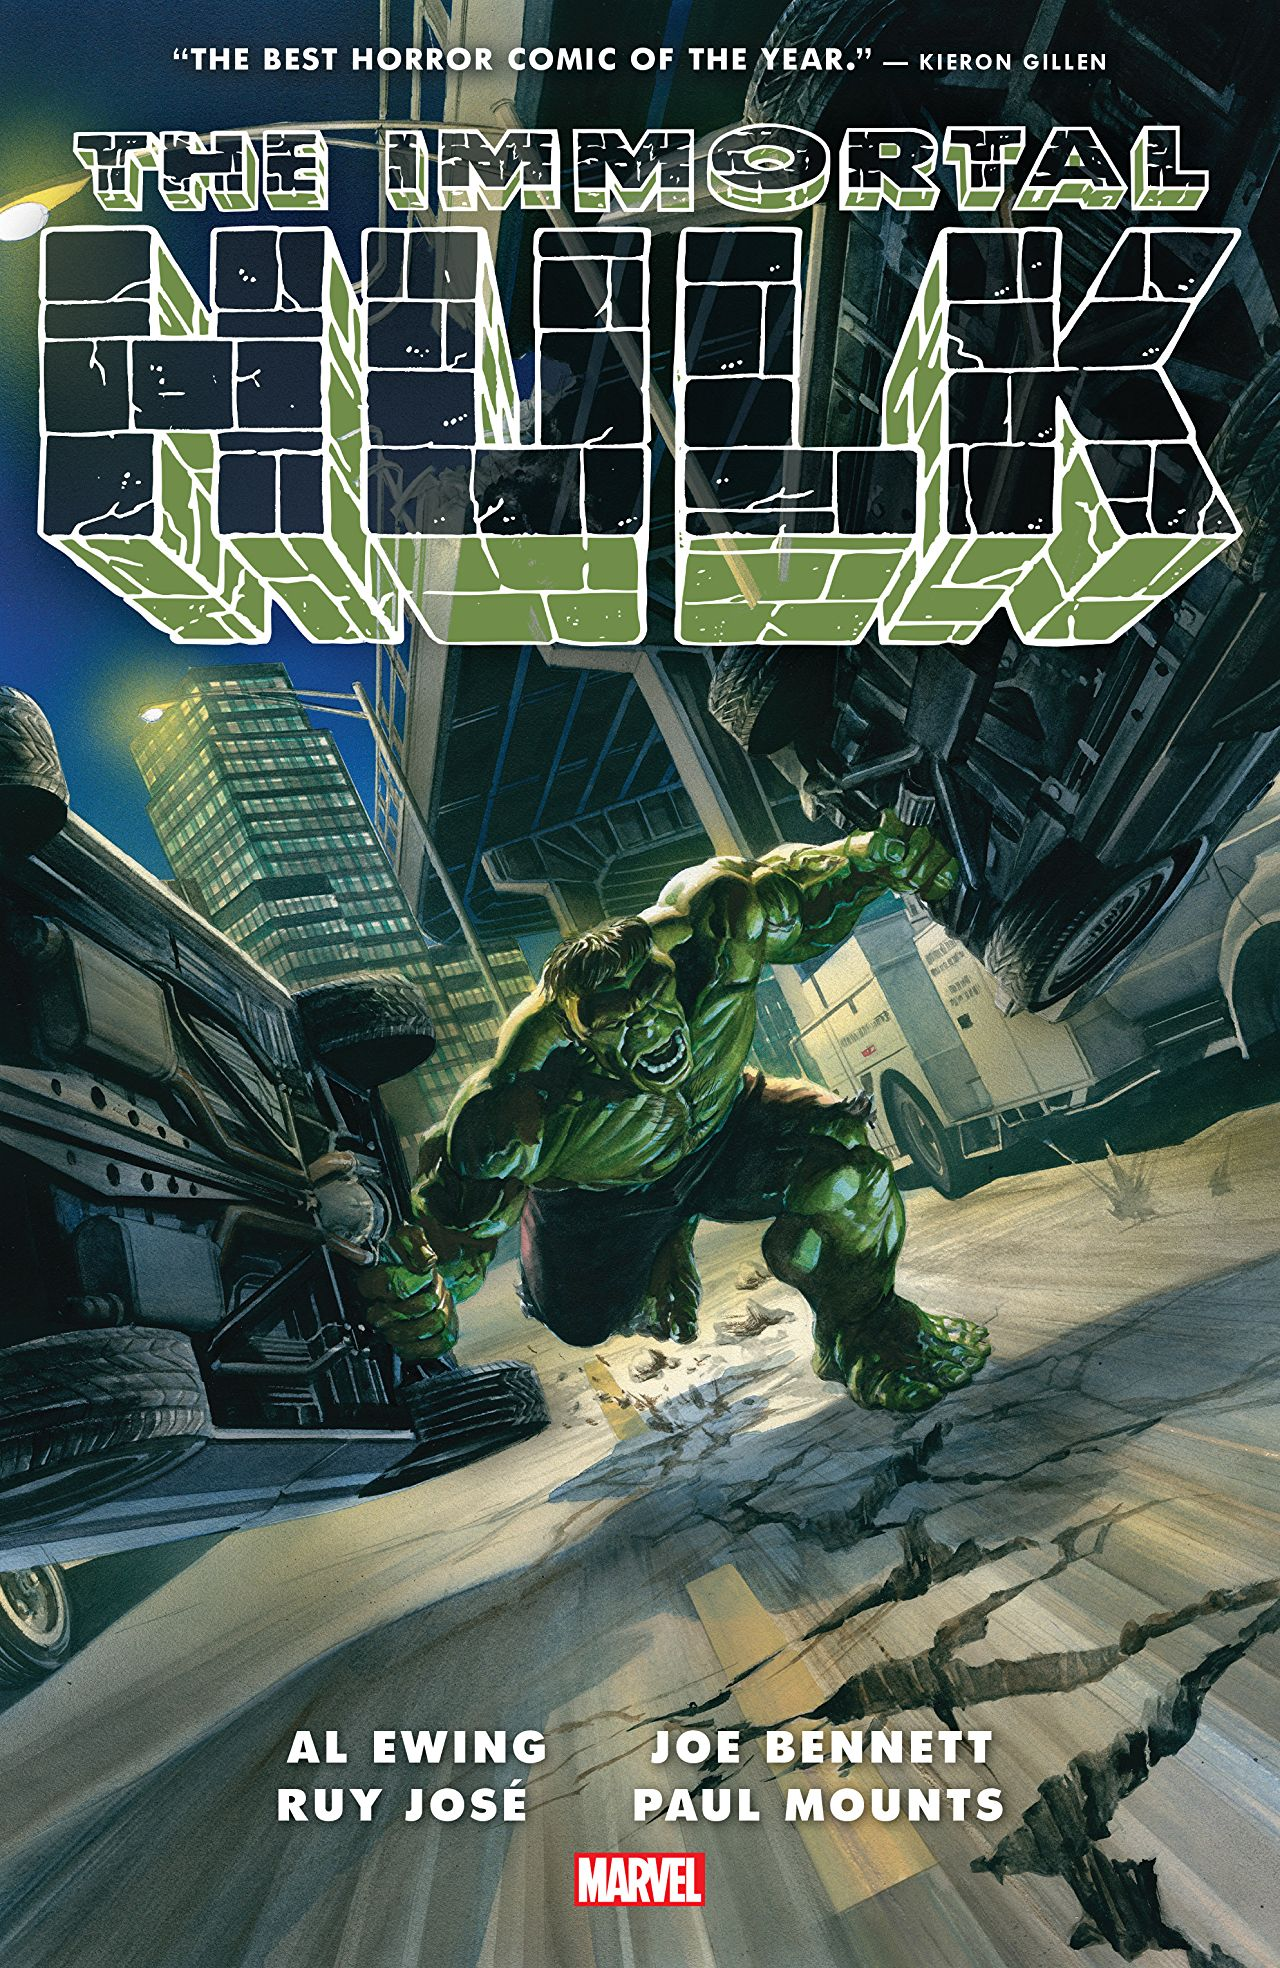 The 100 Best Comics of the Decade: The Immortal Hulk